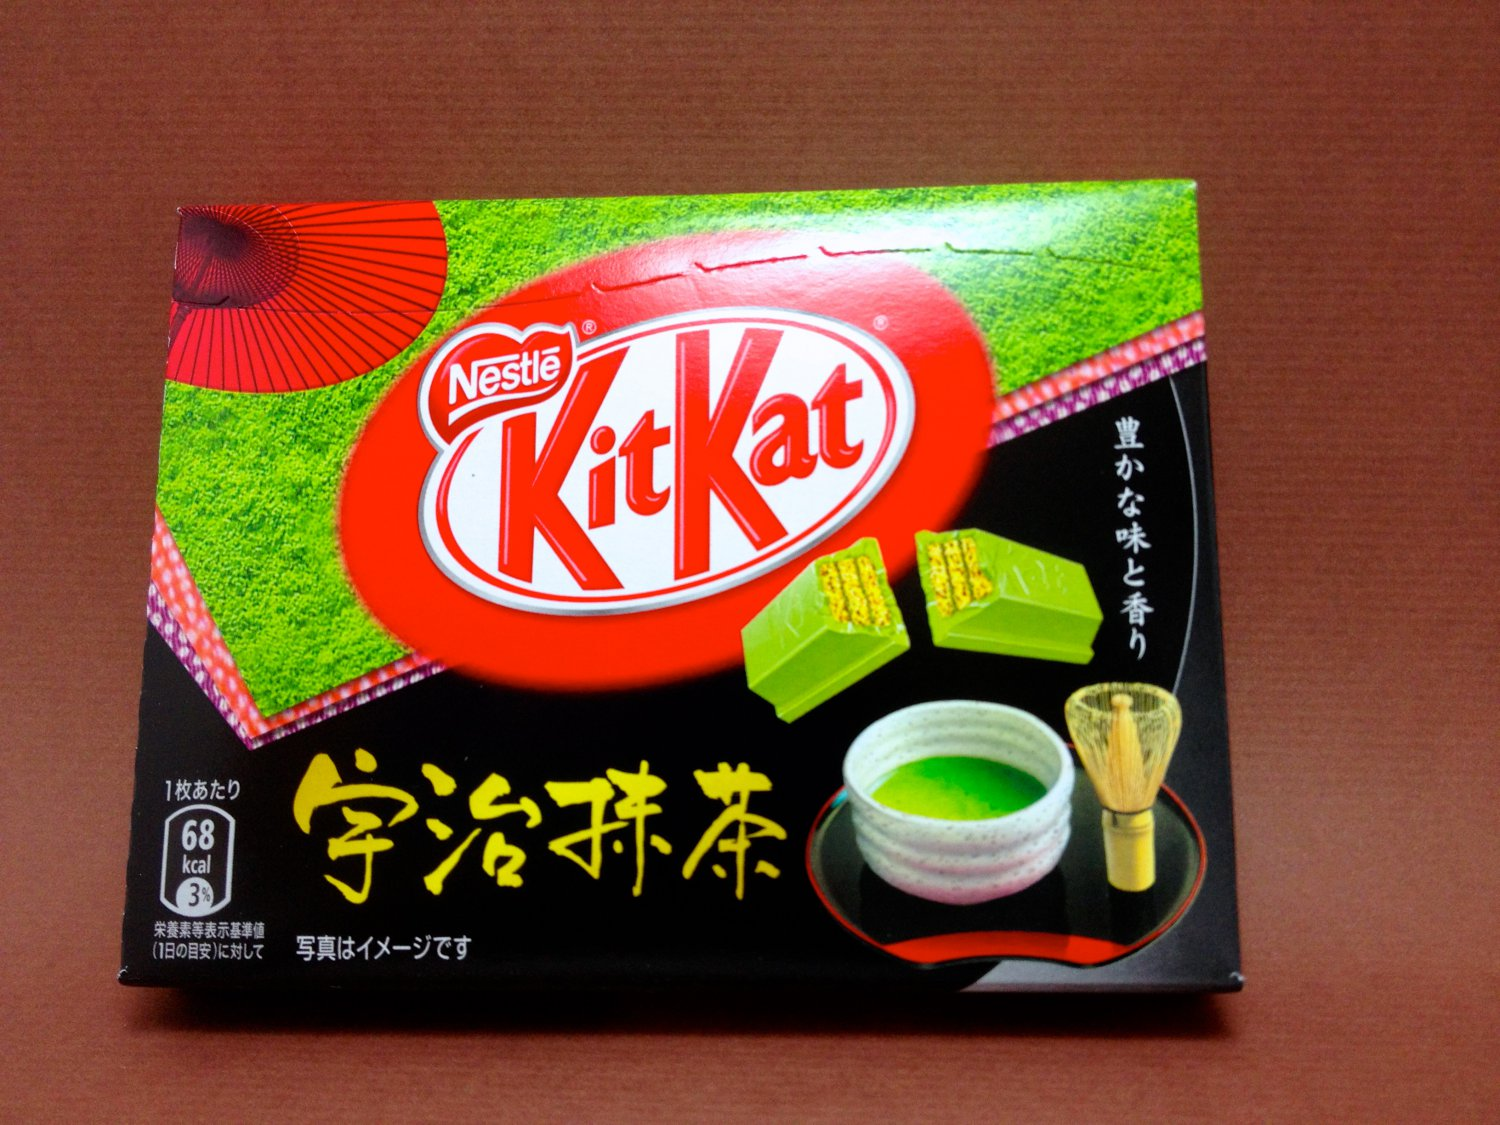 Green Tea Kit Kat - 1 box